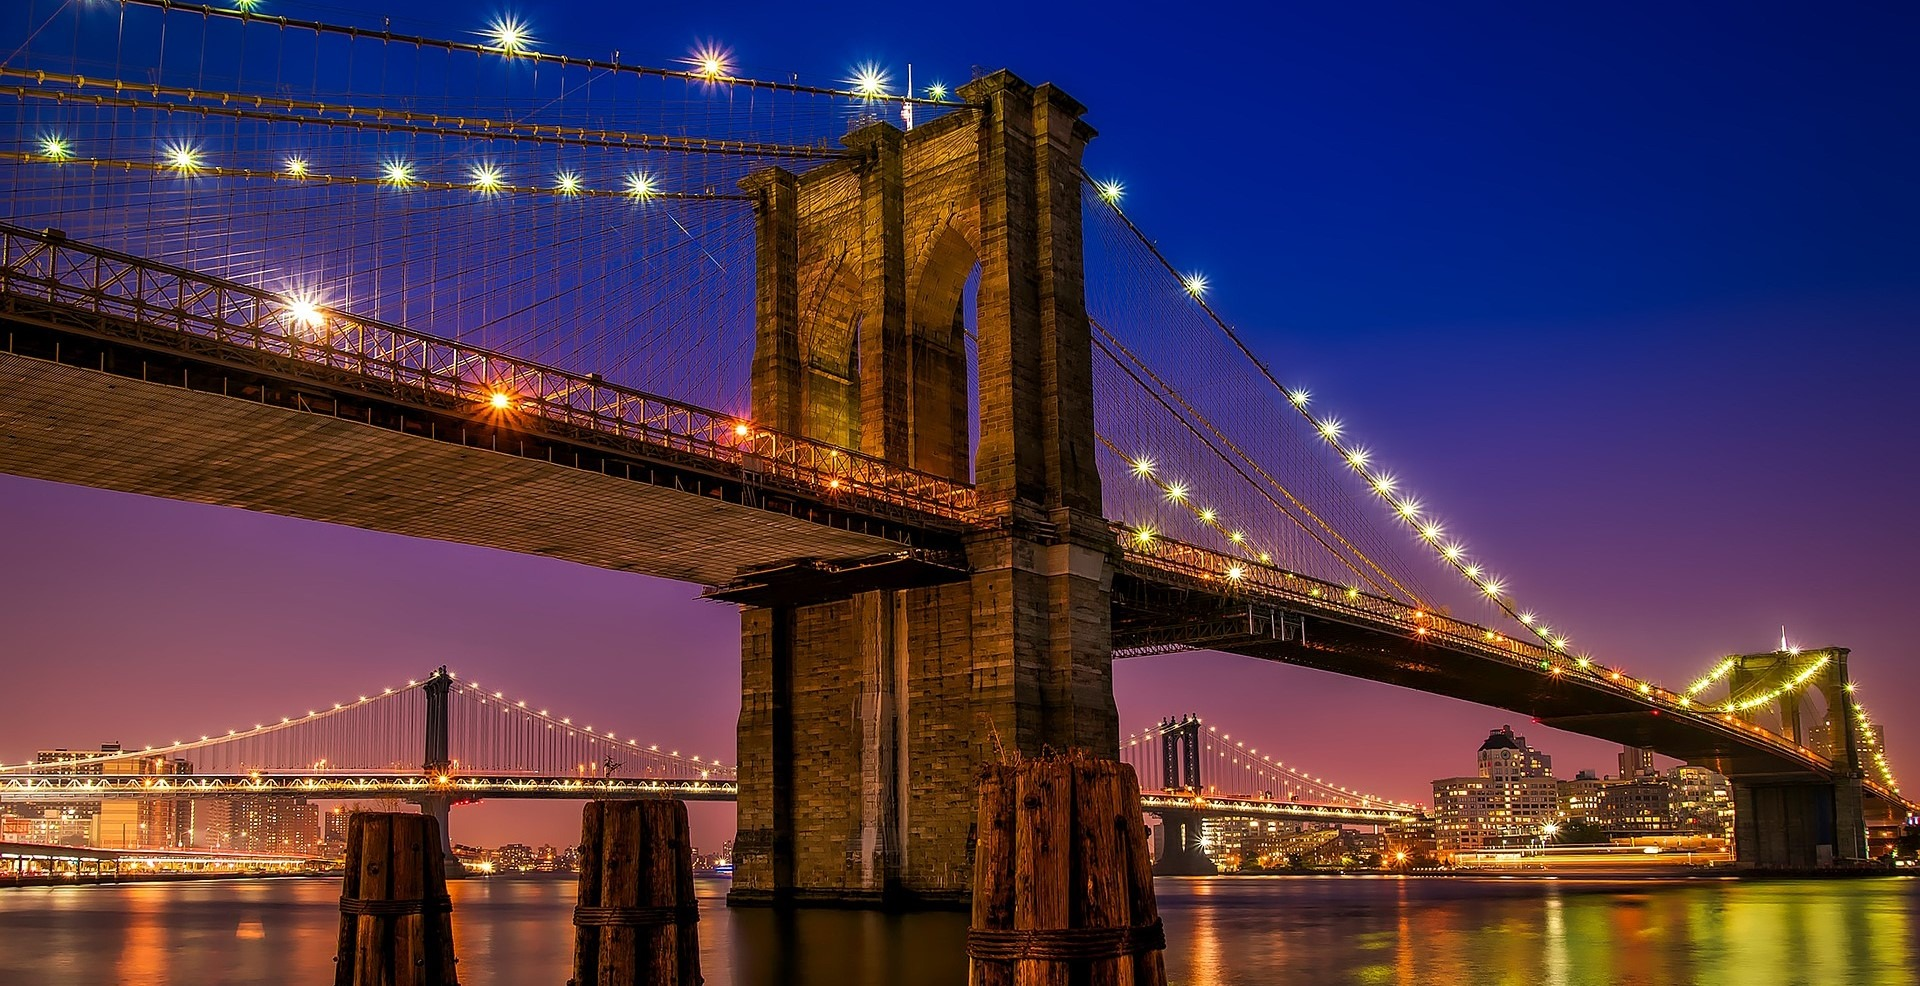 The Famous Brooklyn Bridge at Night - GoodwillCarDonation.org